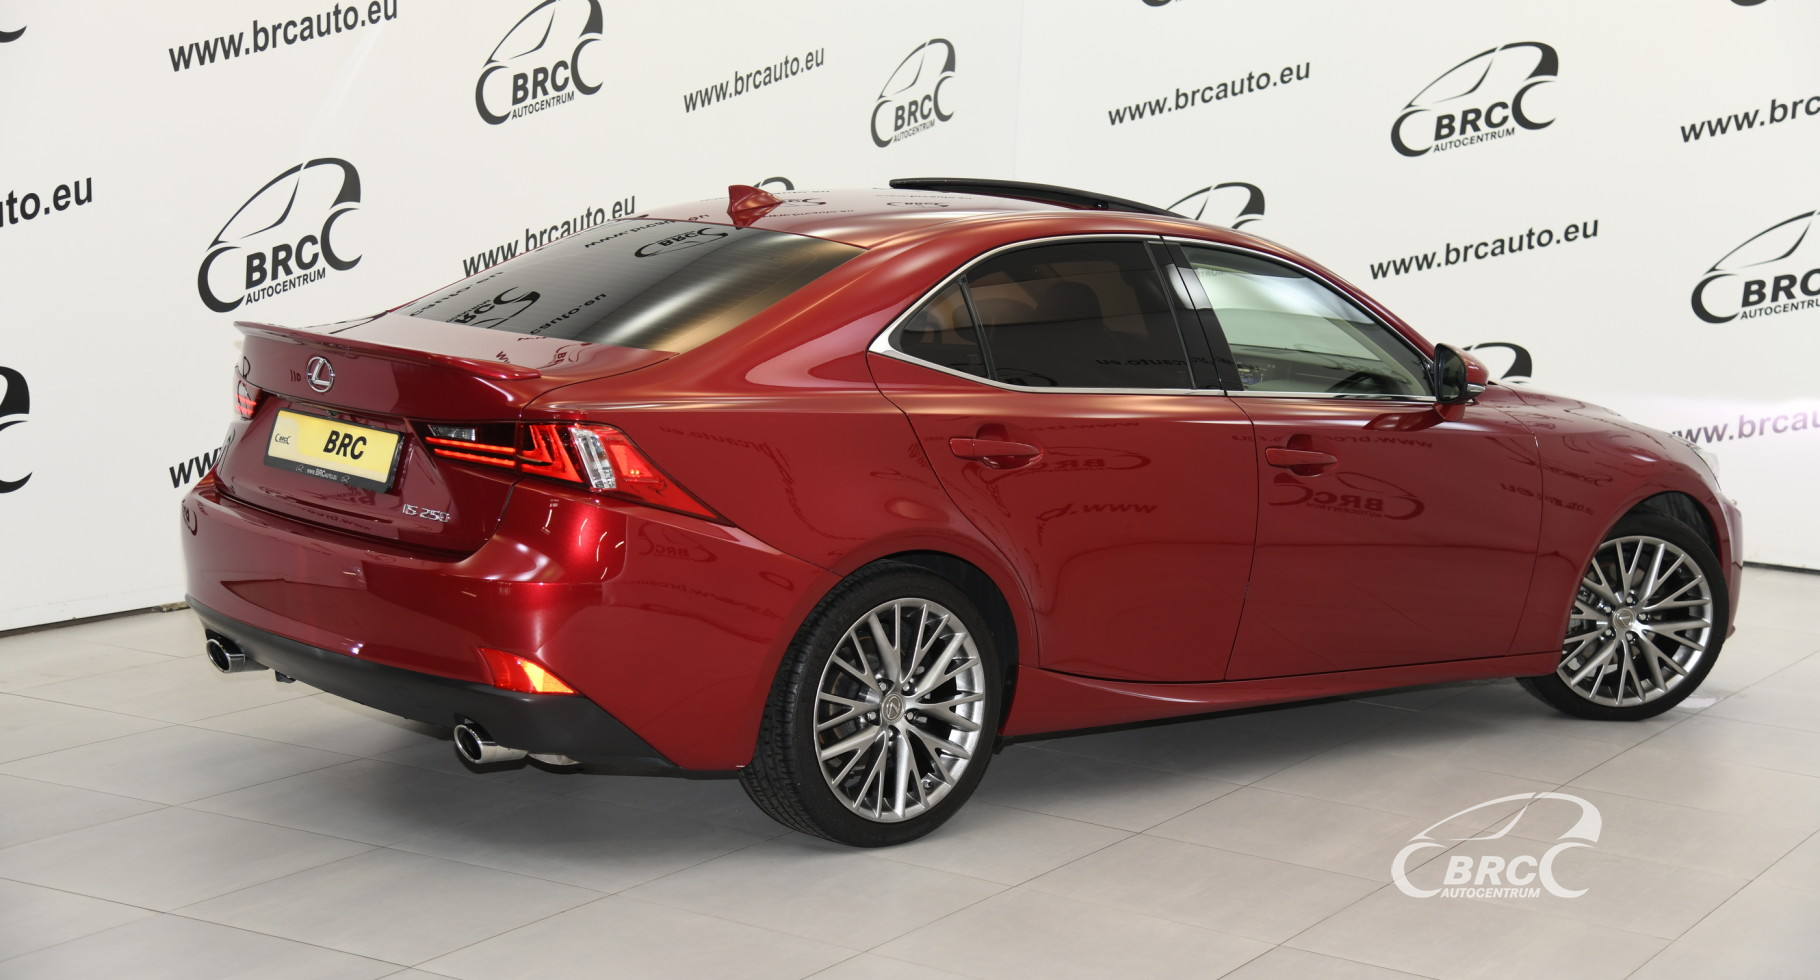 Lexus IS 250 Luxury Automatas